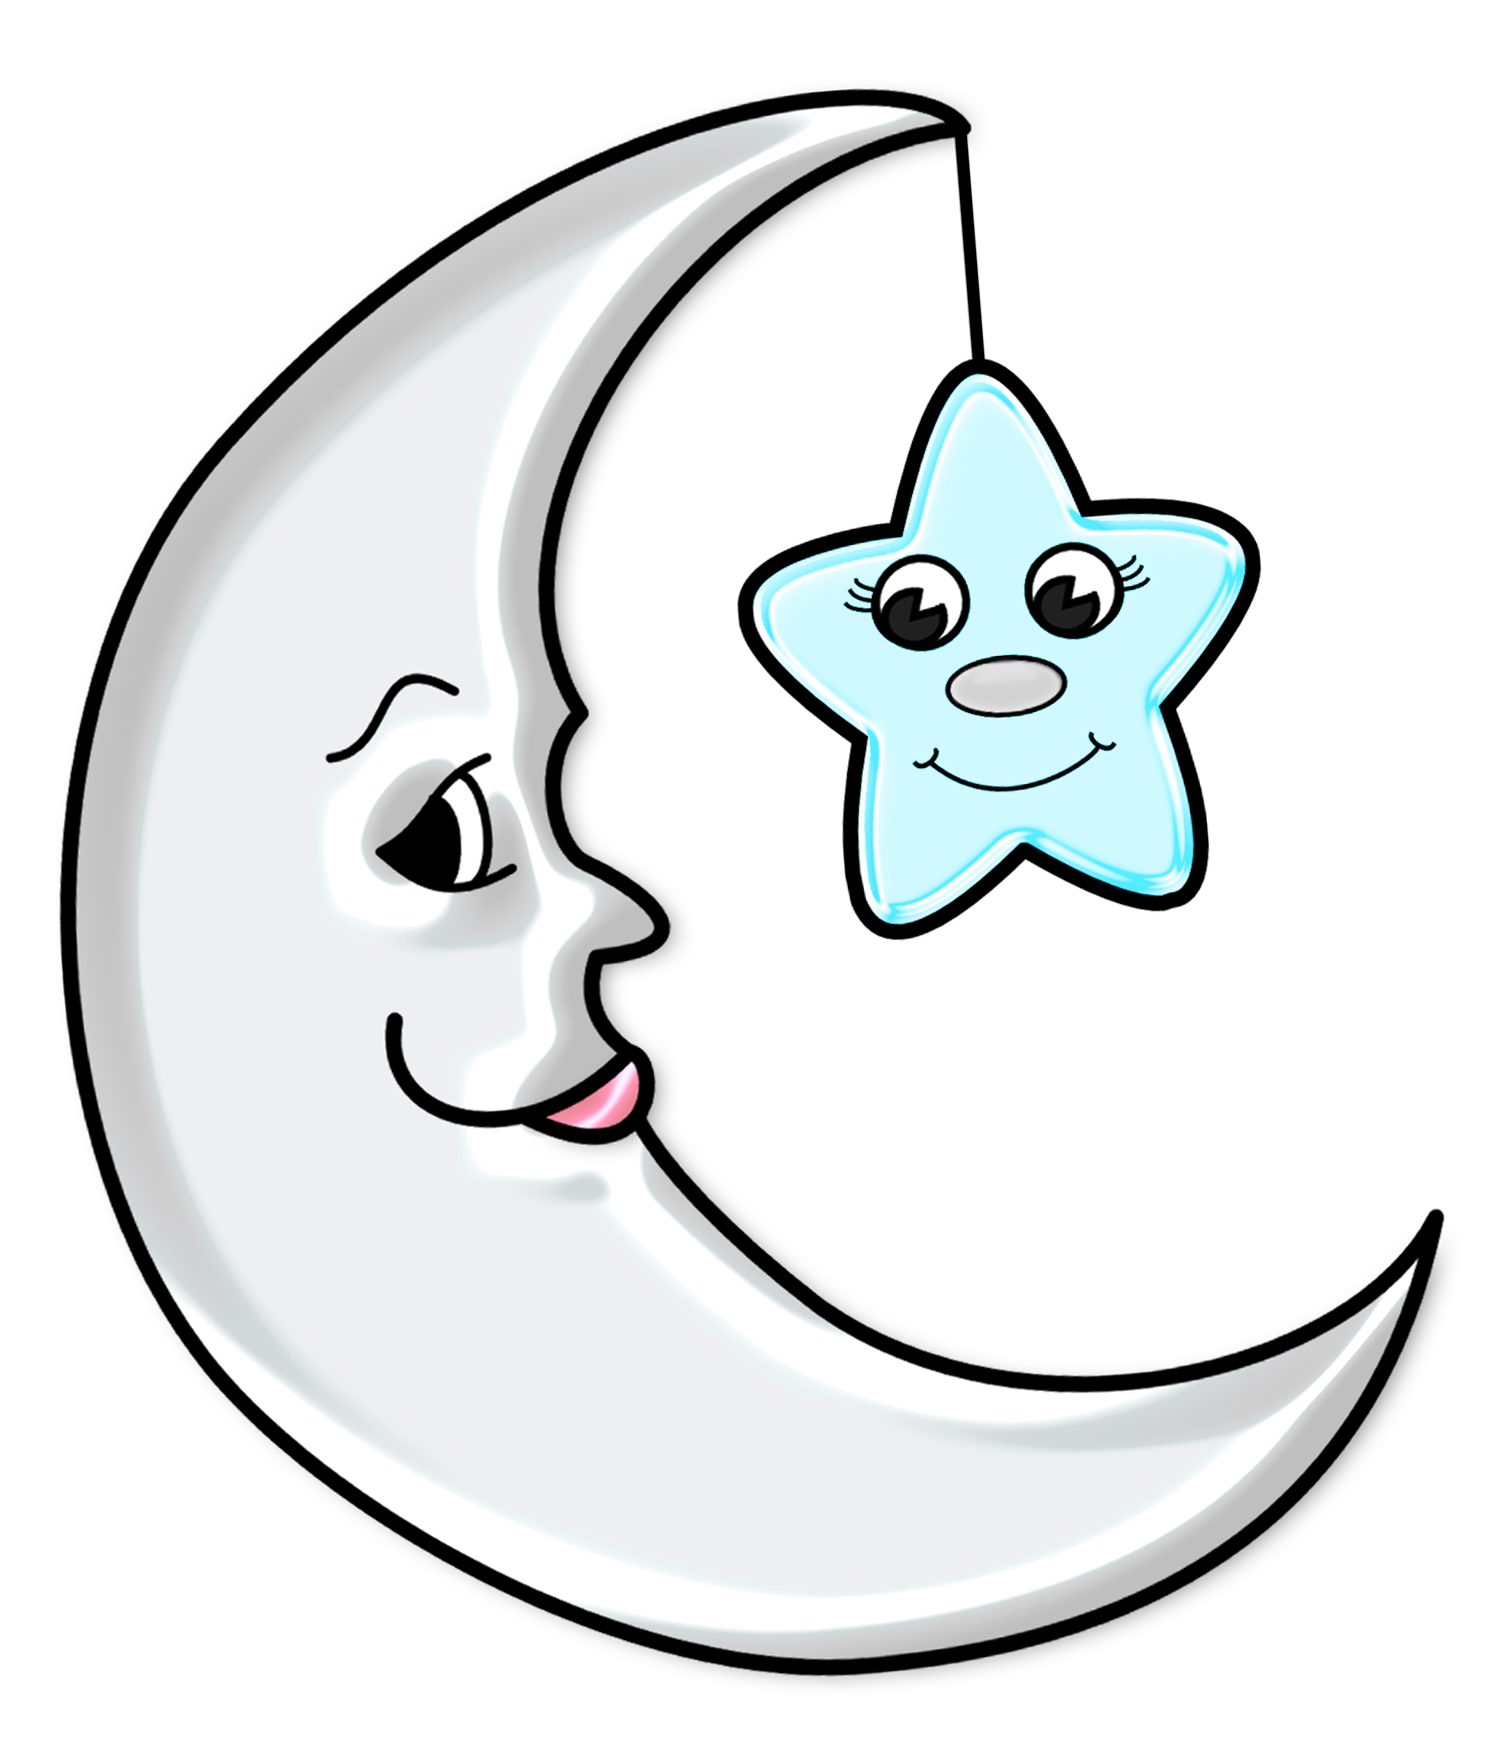 Child sun and moon clipart clipart library Sun Moon Stars Drawing at GetDrawings.com | Free for personal use ... clipart library